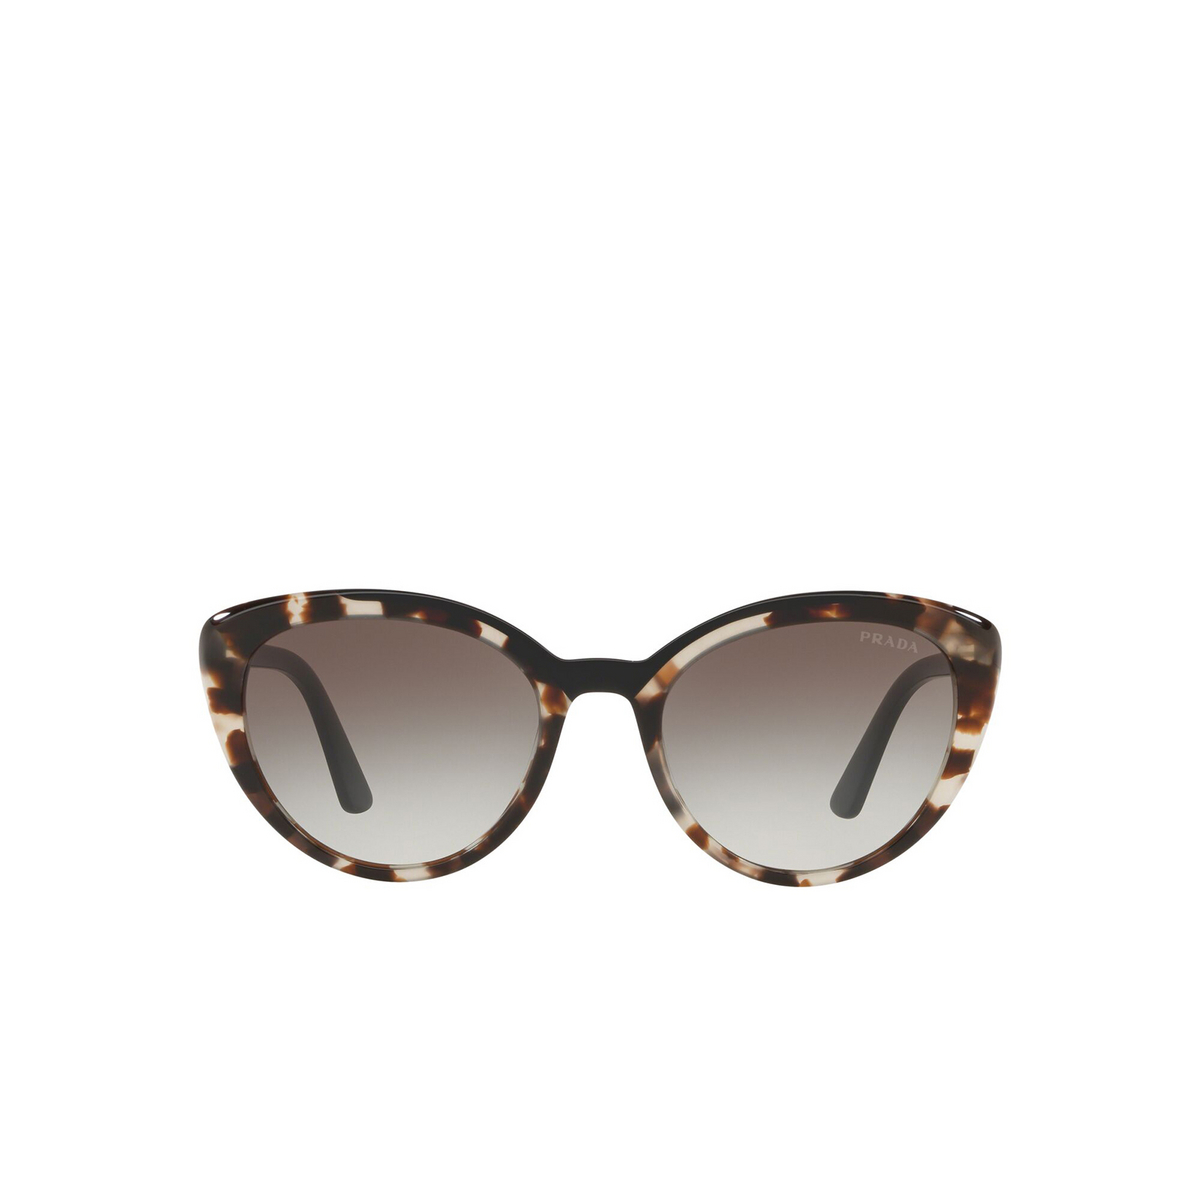 Prada® Cat-eye Sunglasses: Conceptual PR 02VSF color Opal Spotted Brown / Black 3980A7 - front view.